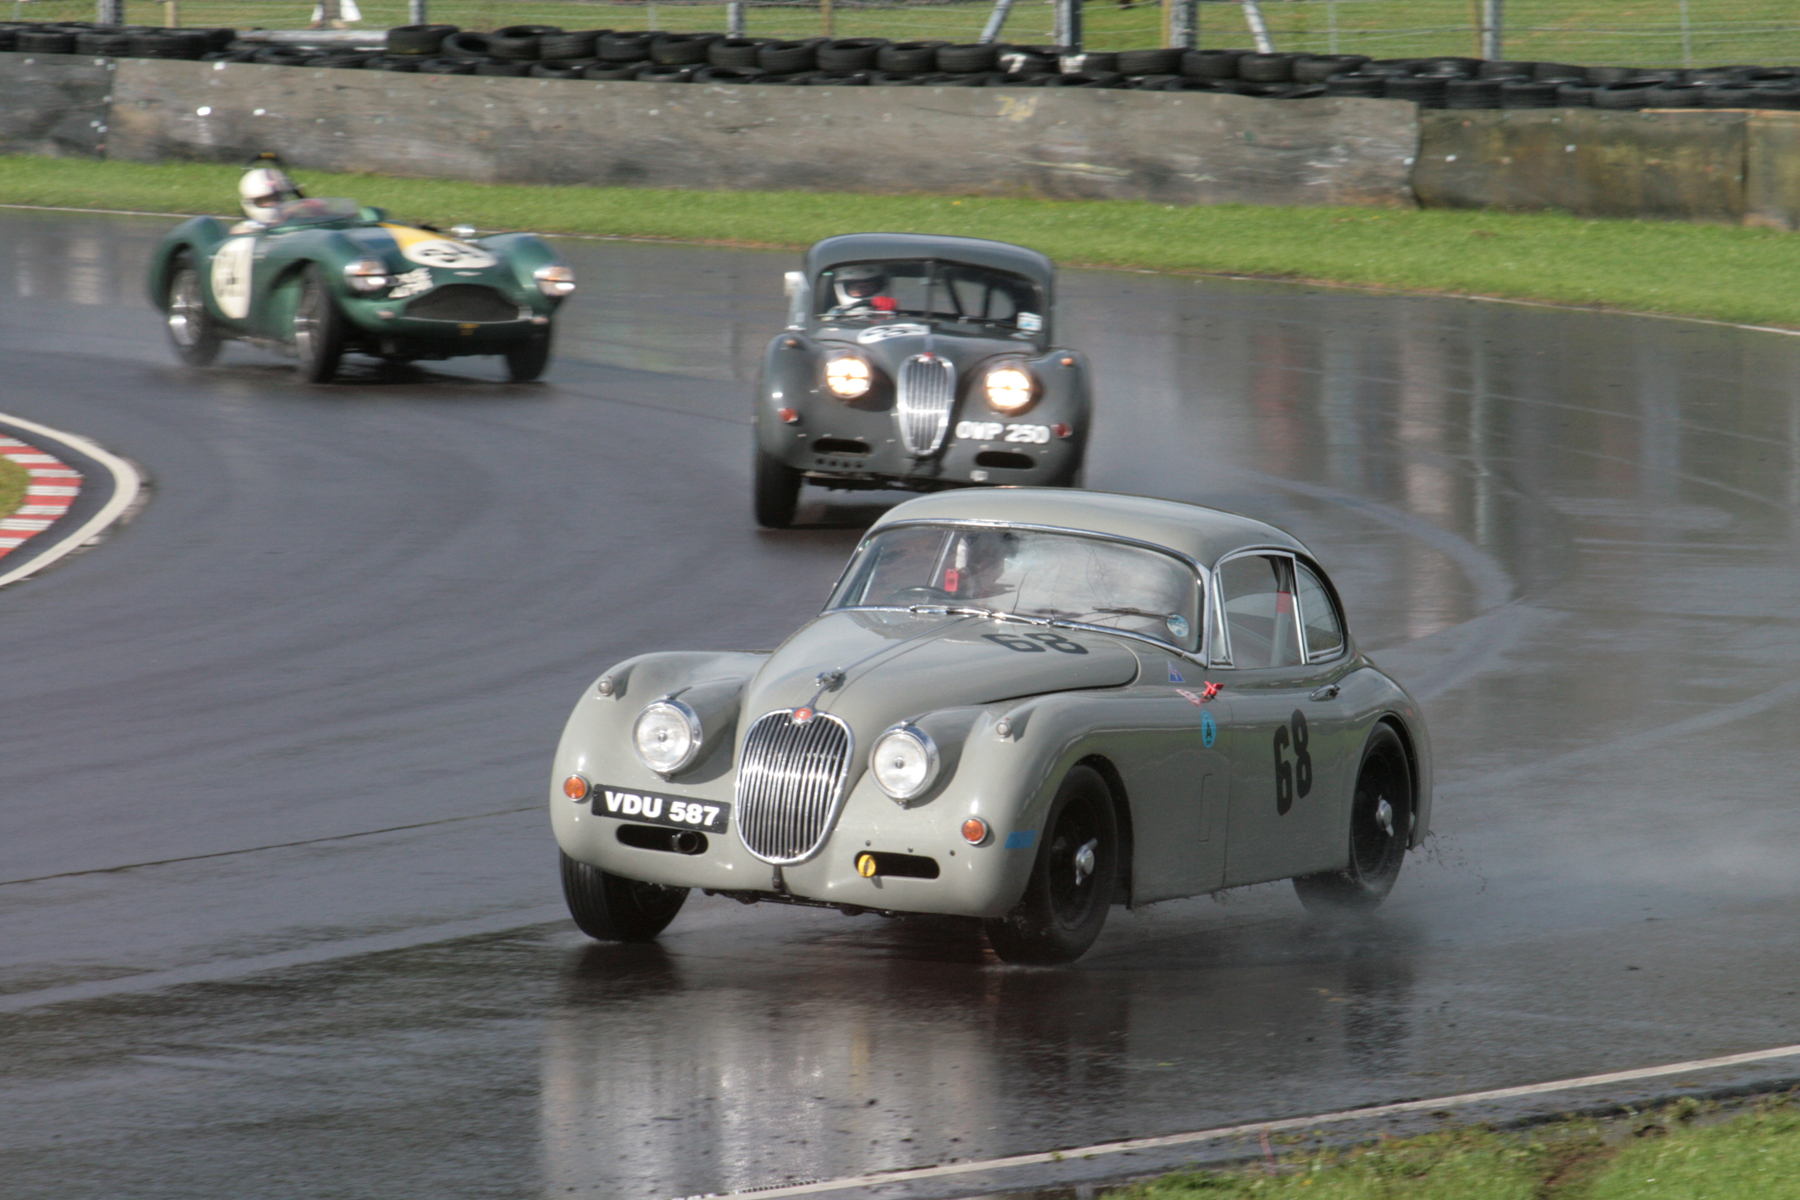 Paul de Havilland takes a wide line out of Quarry in his Jaguar XK150 whilst looming large behind is the lead battle .    Photo - John Turner